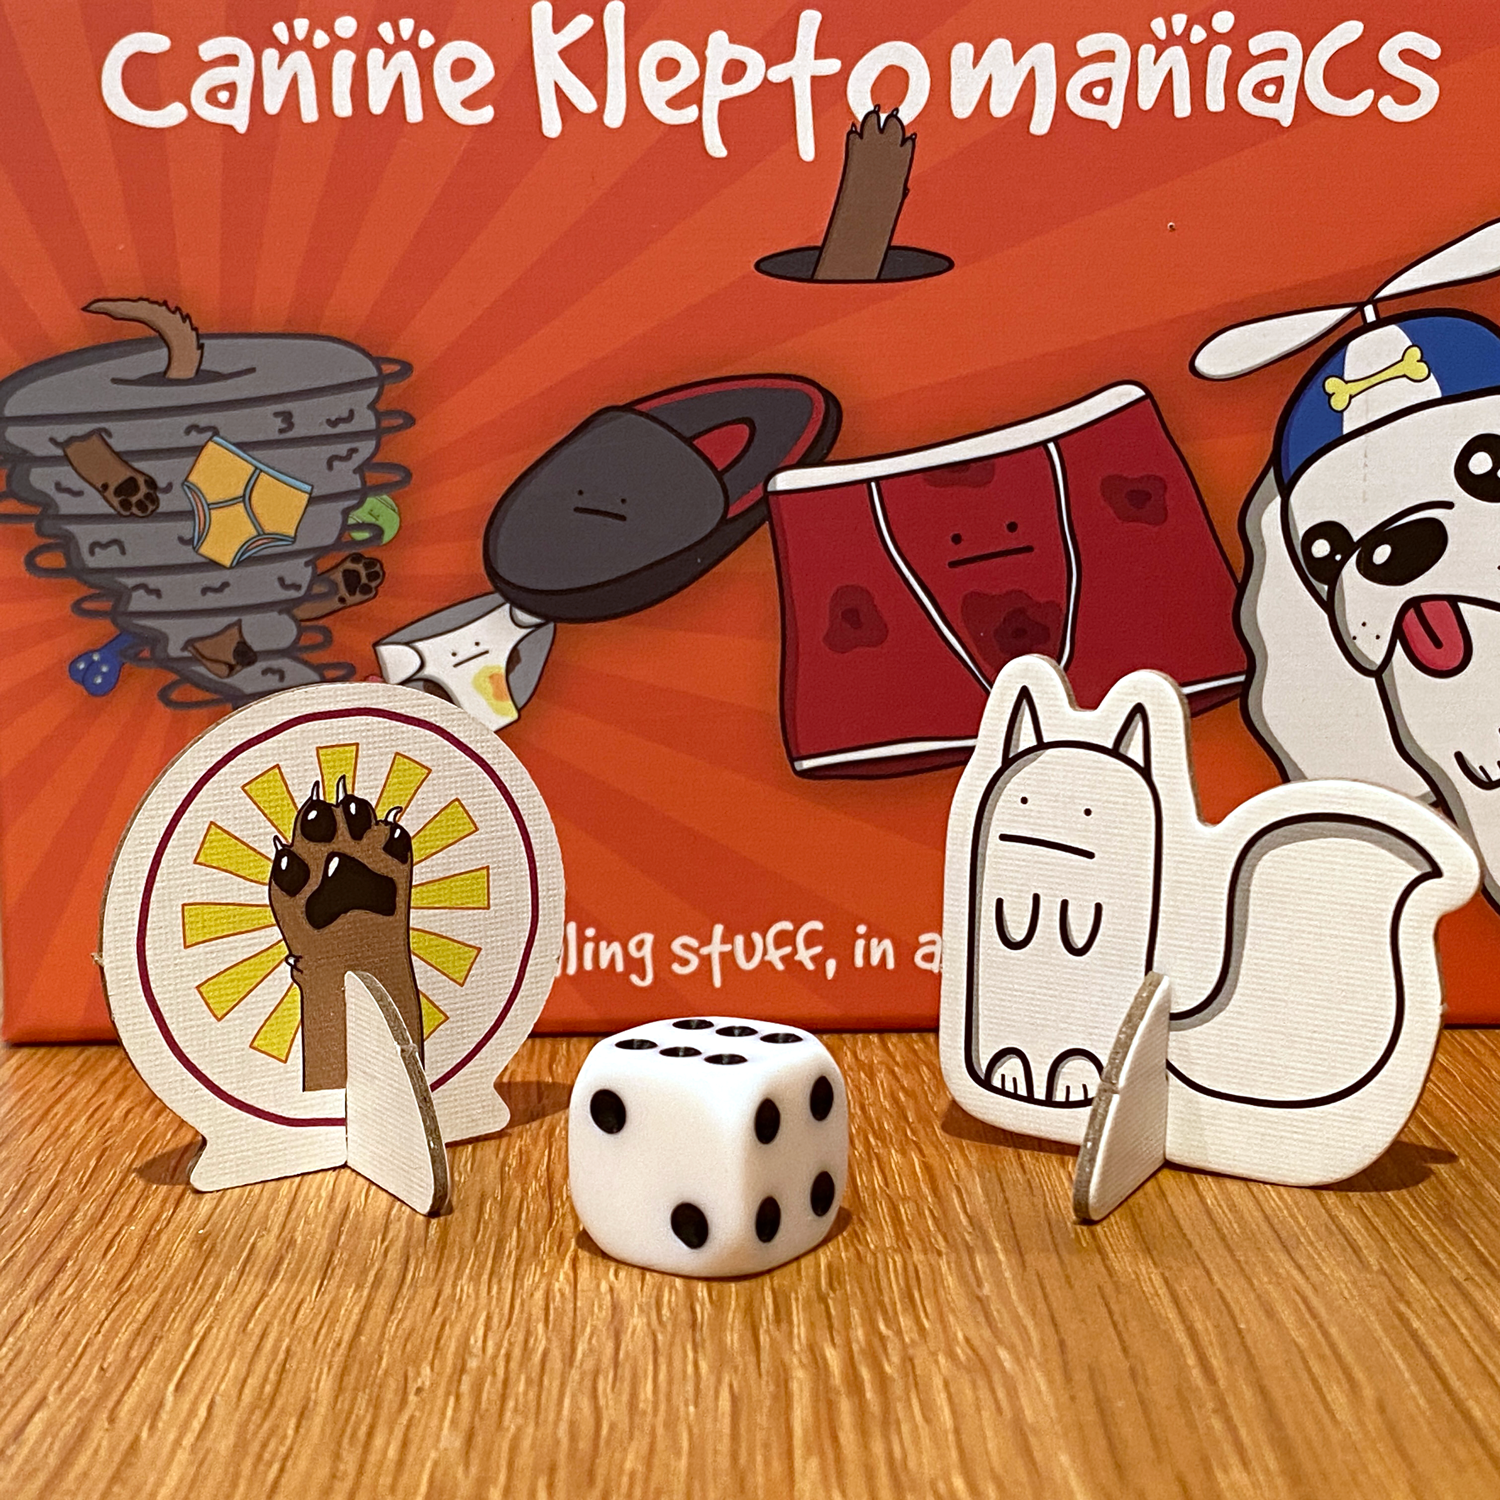 Canine-Kleptomaniacs-Standees